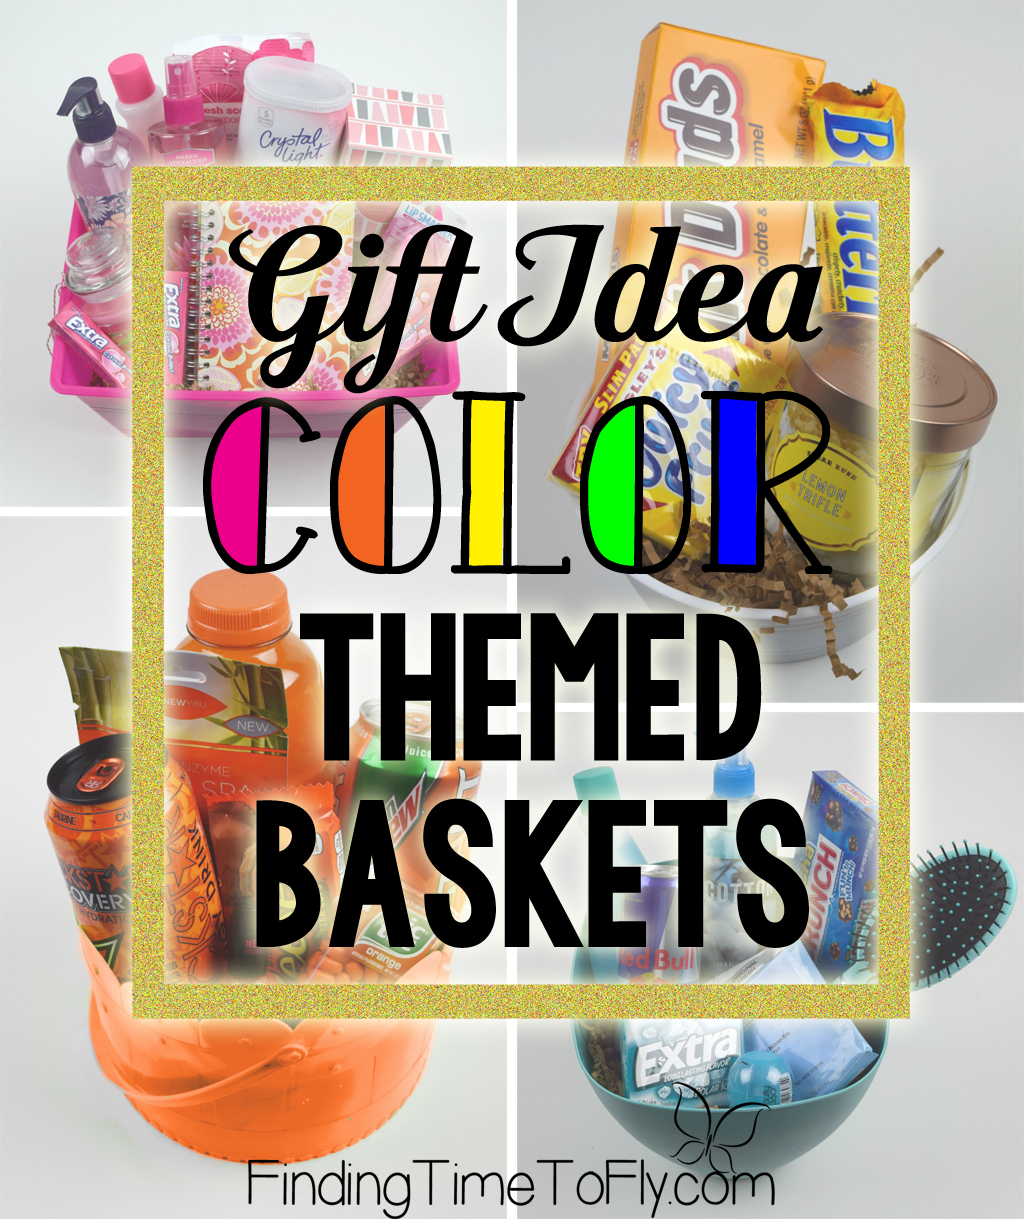 Gift Basket Ideas for anyone. There are some great inexpensive ideas in these baskets, and they are really cute gift ideas!